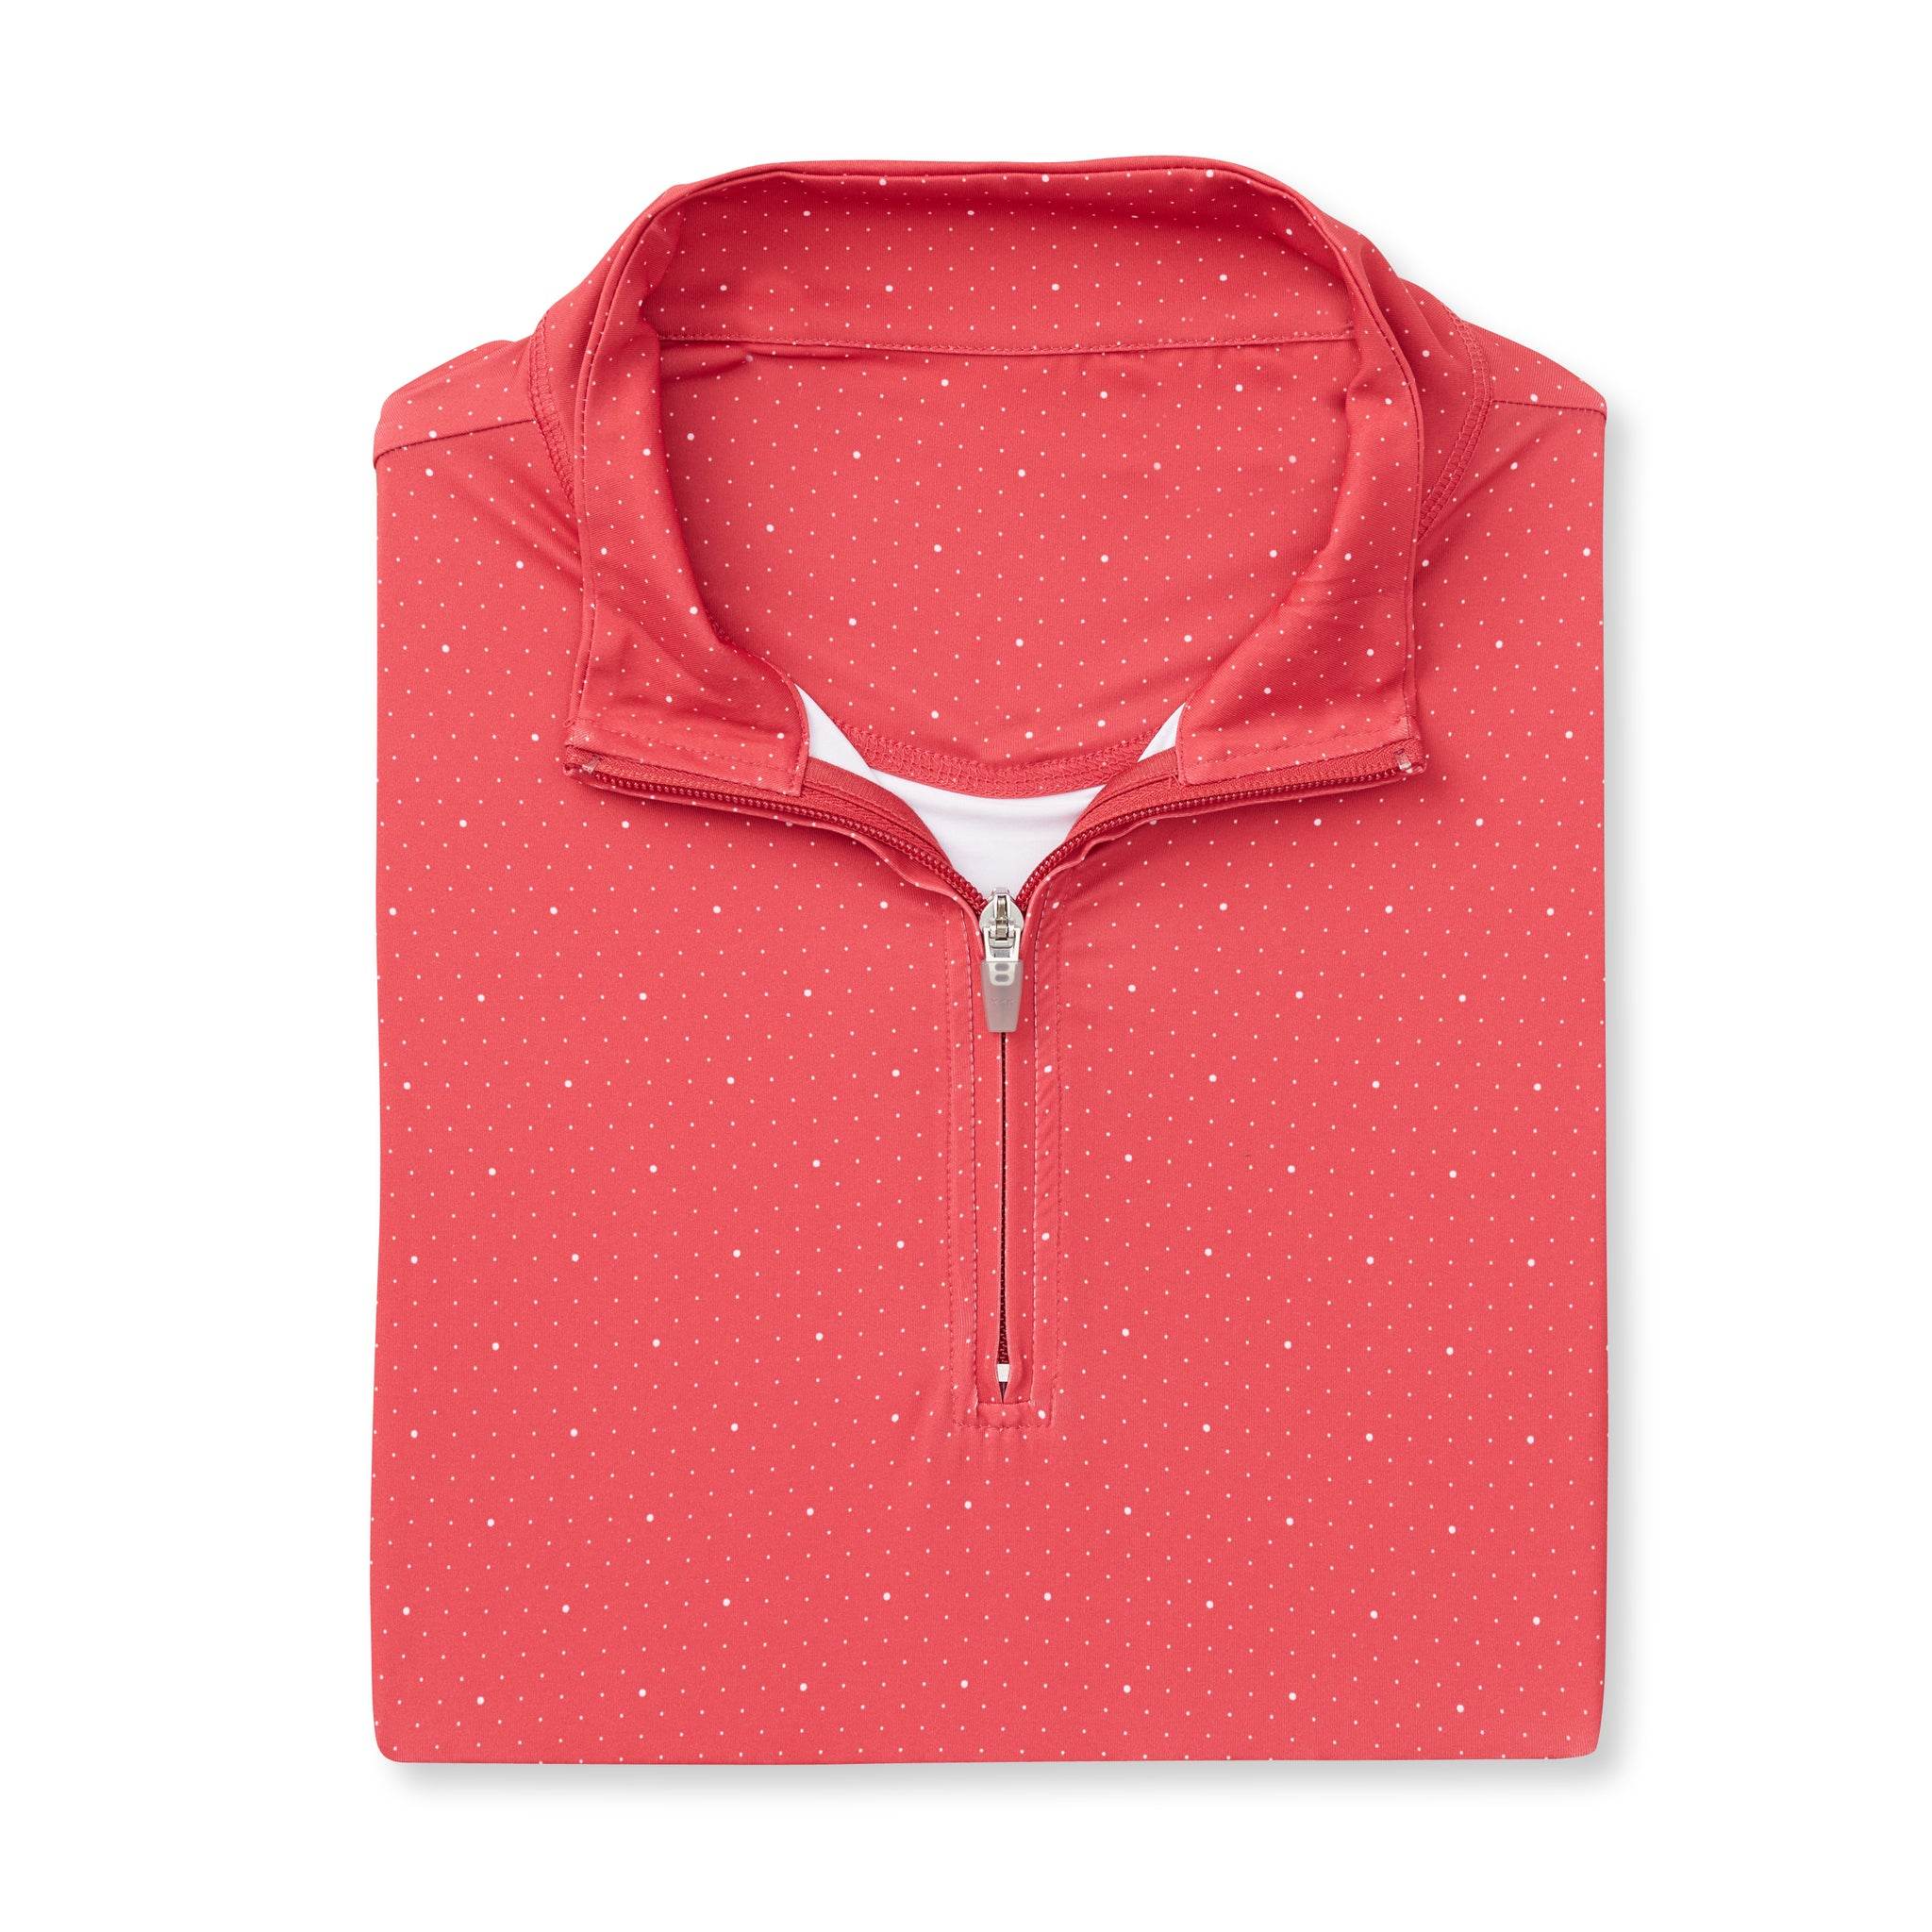 THE SKYWALKER HALF ZIP PULLOVER - Crimson/White IS76216